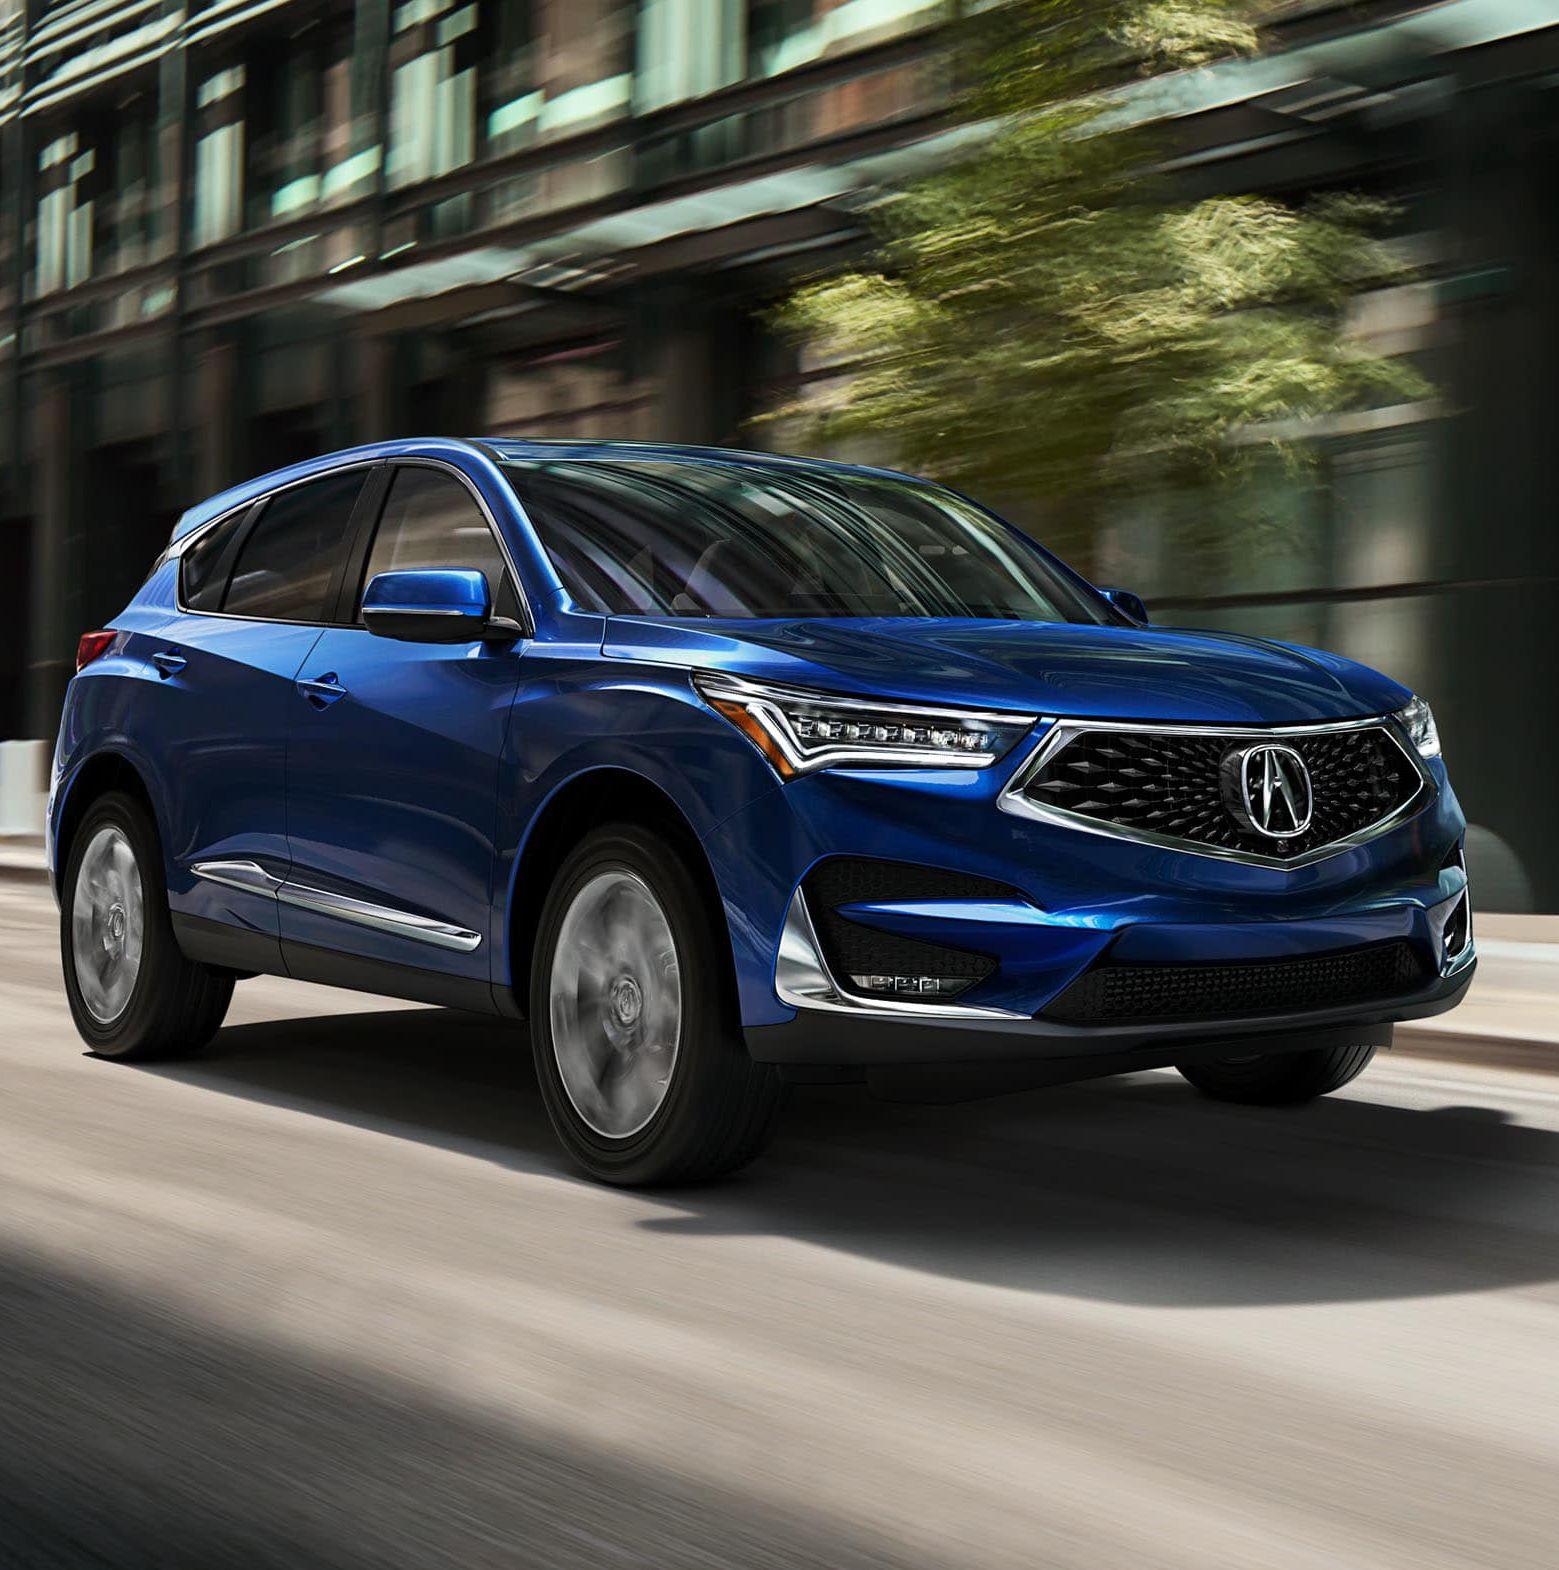 Acura Rdx Lease: 2019 Acura RDX Leasing Near Chicago, IL